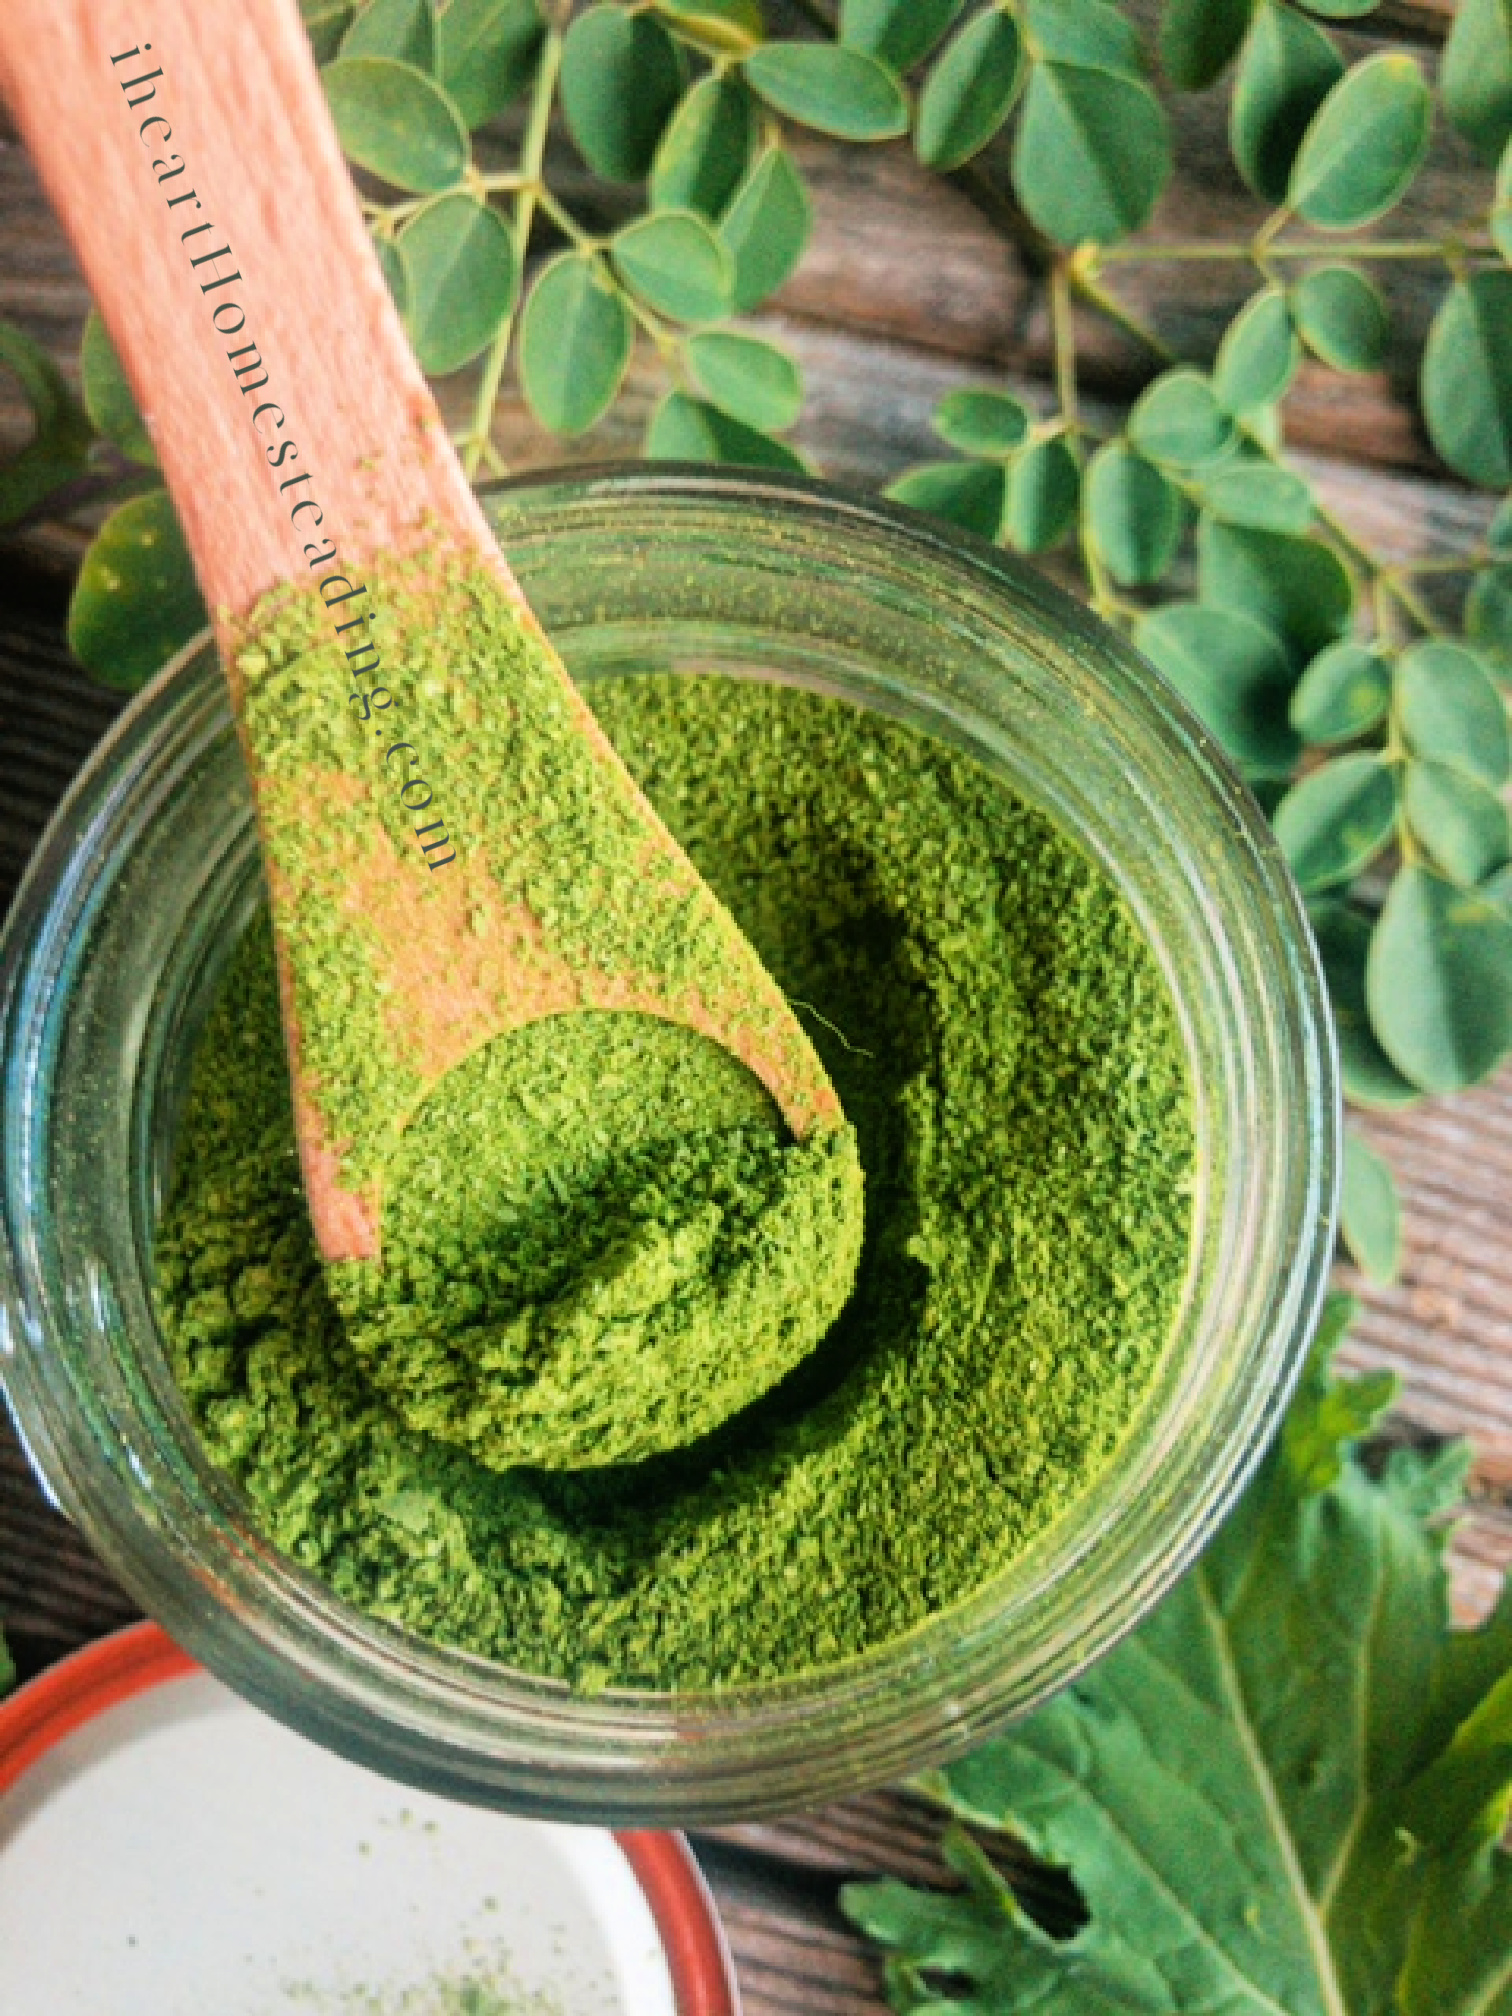 HOW TO MAKE YOUR OWN MORINGA POWDER | MAKE YOUR OWN SUPER GREENS AT HOME